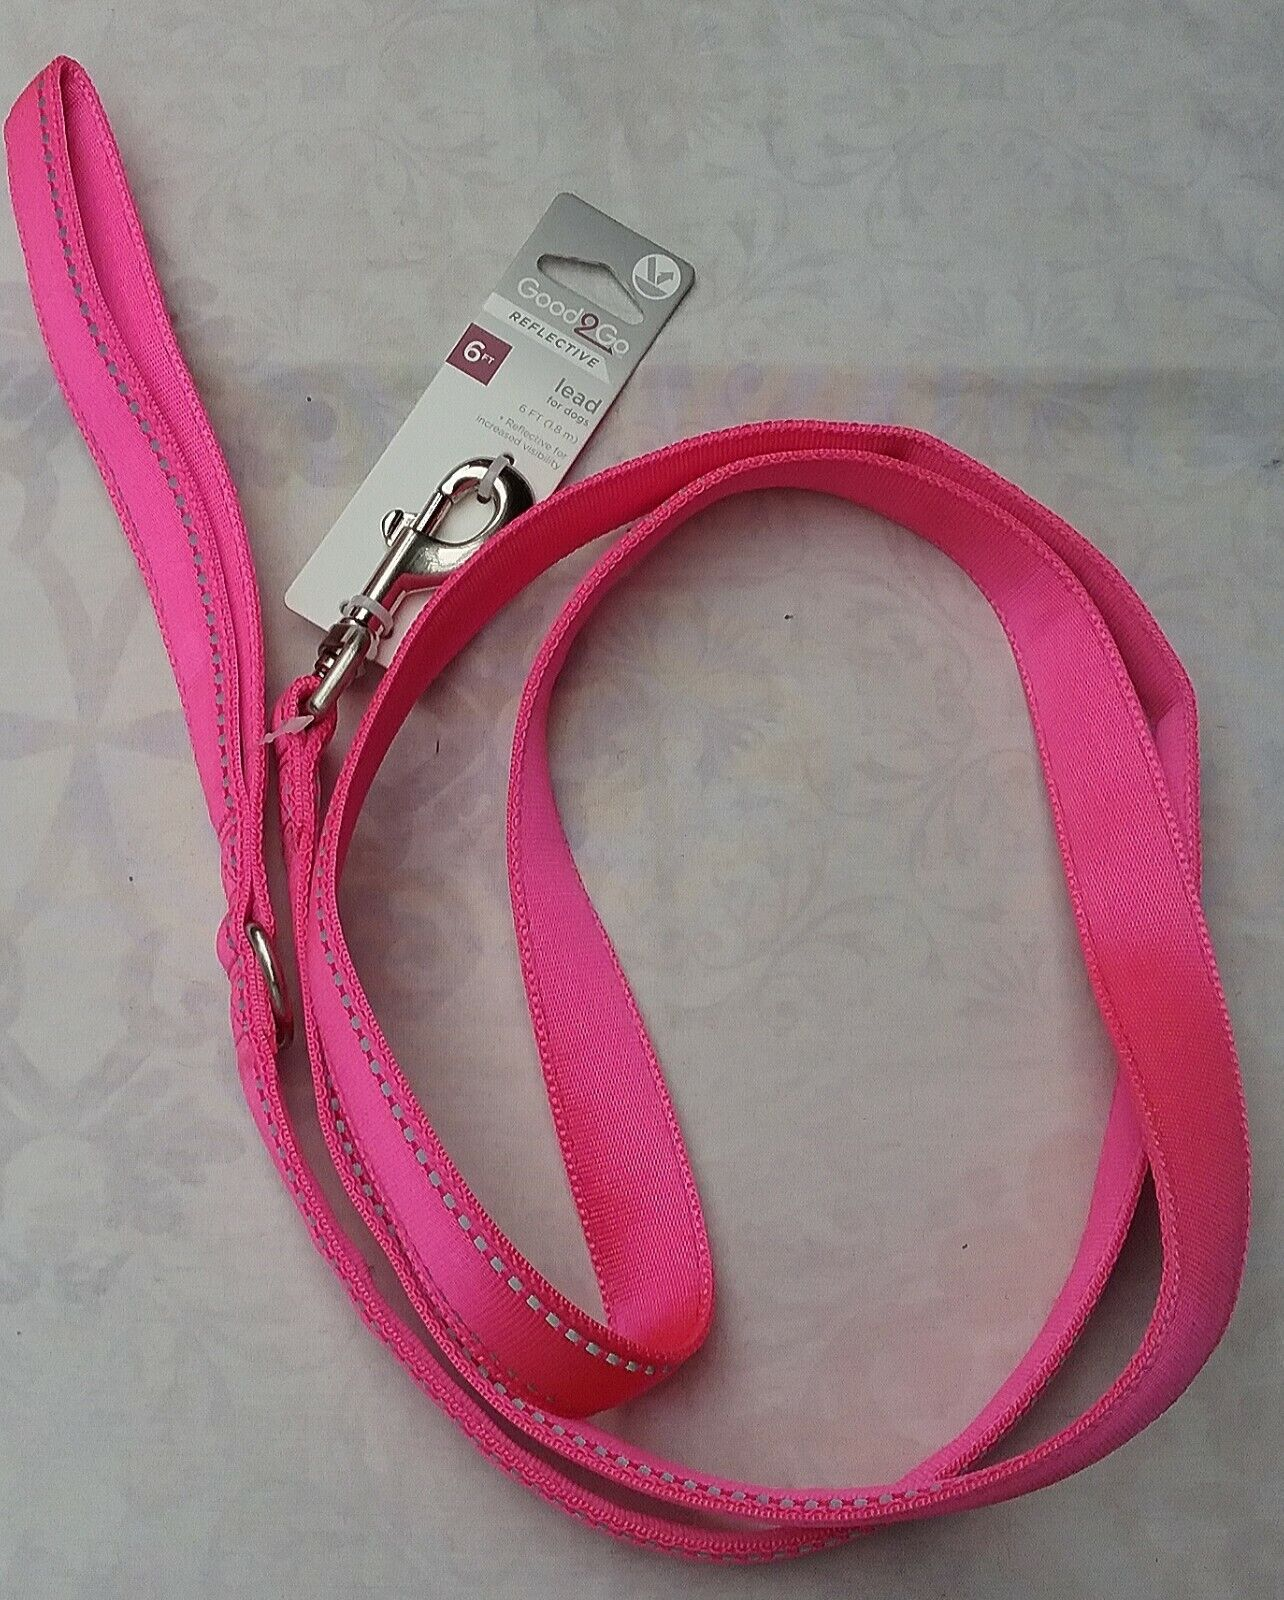 NEW GOOD TO GO REFLECTIVE LEASH, FLUORESCENT PINK, 6 LONG - $13.50